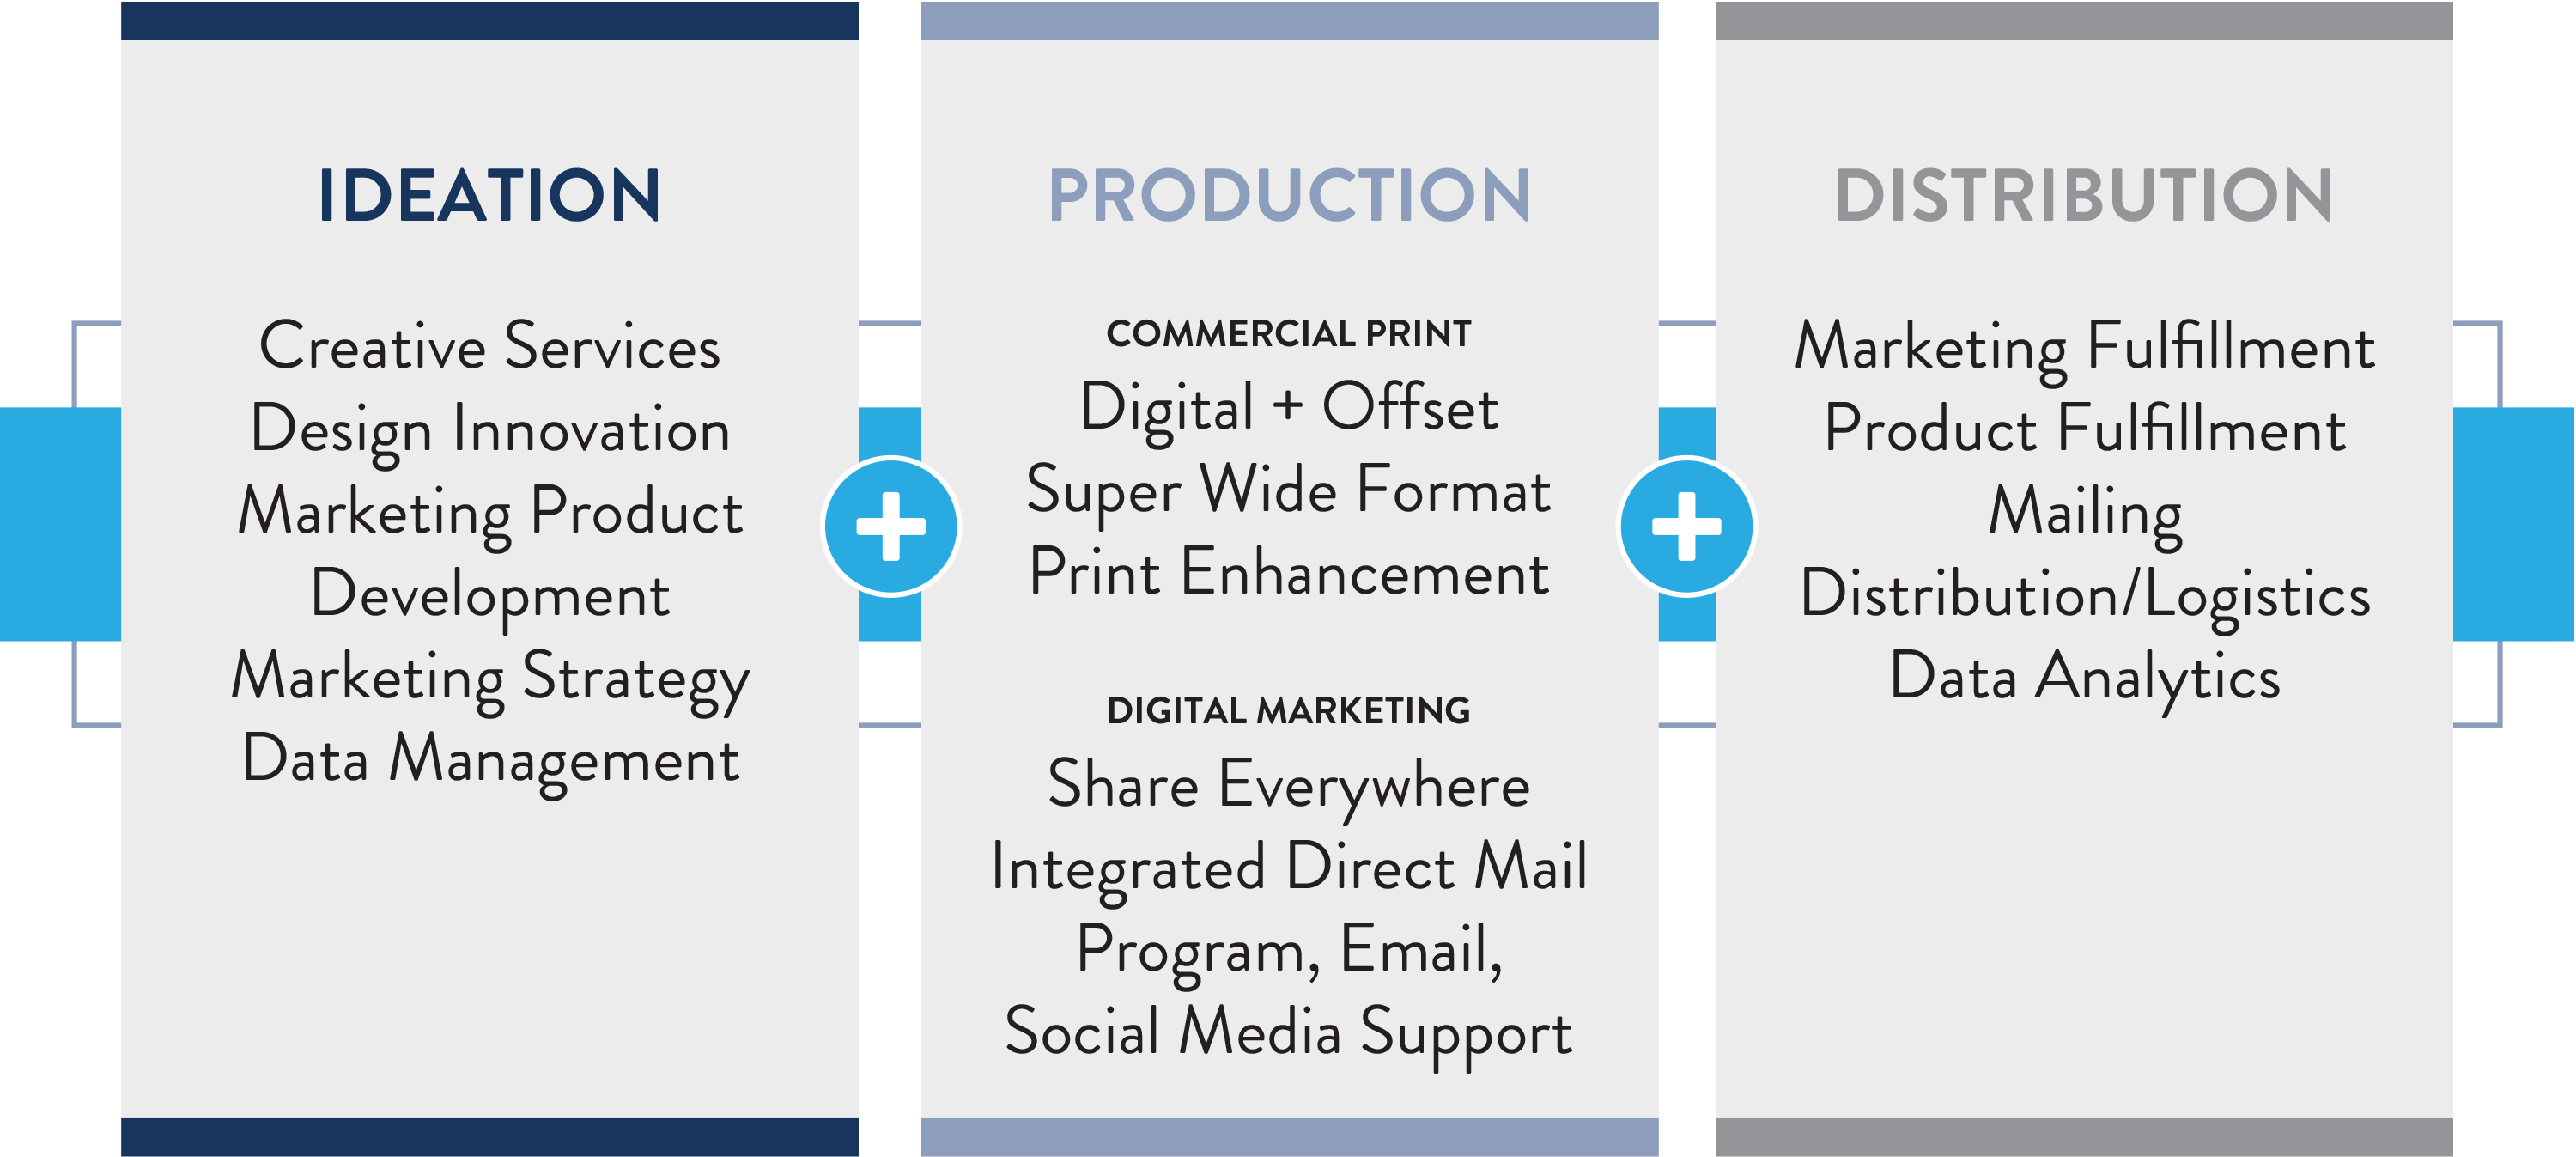 We built our company around the demand chain principles of ideation + production + distribution